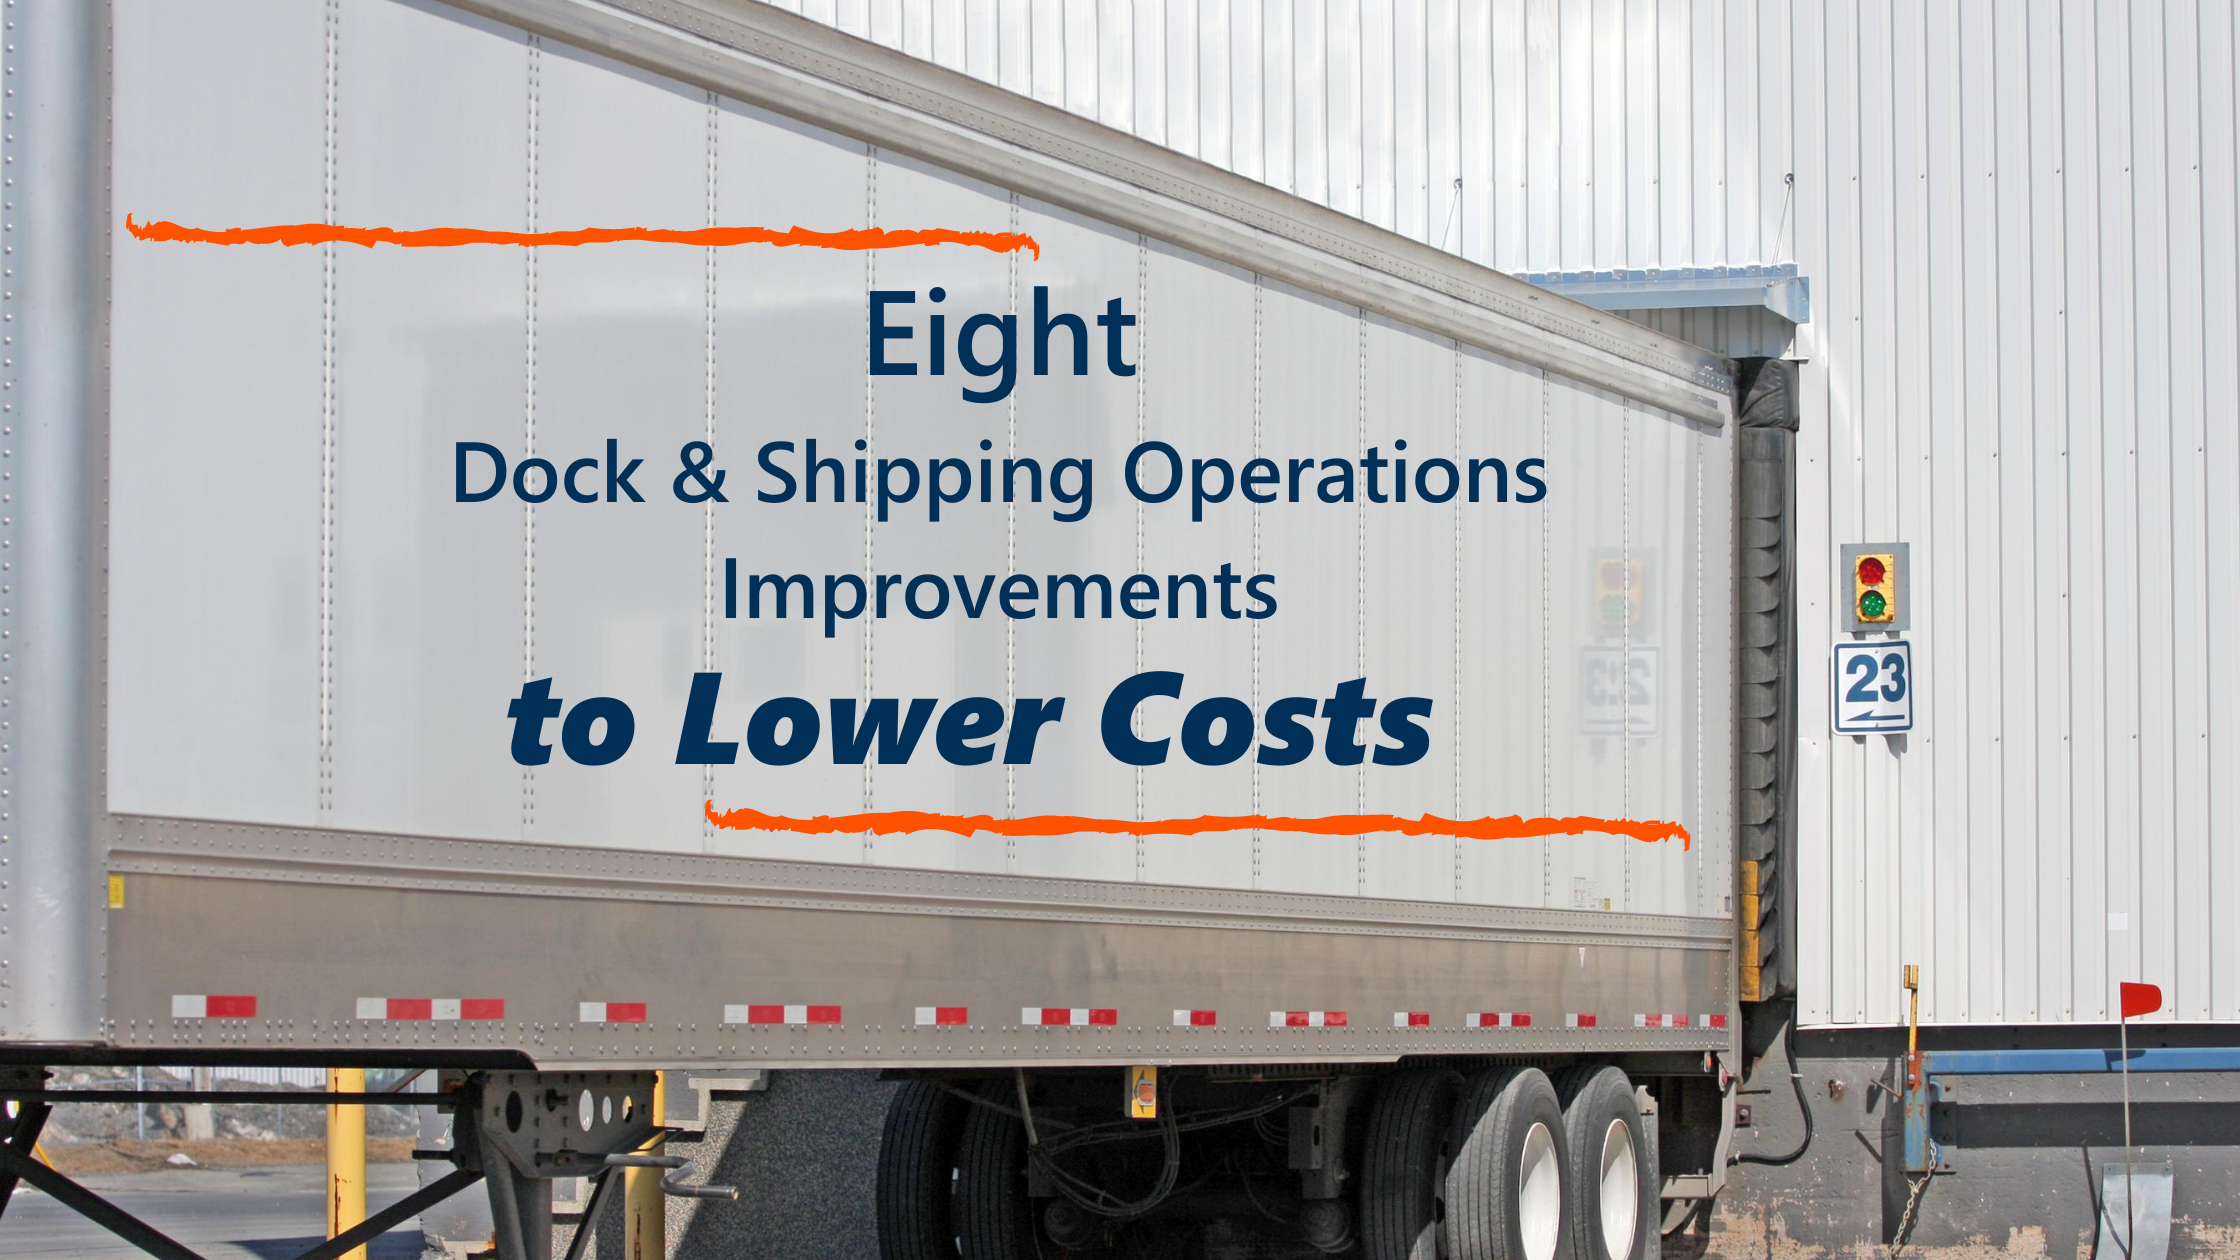 8 Things to Improve on Dock & Shipping Operations